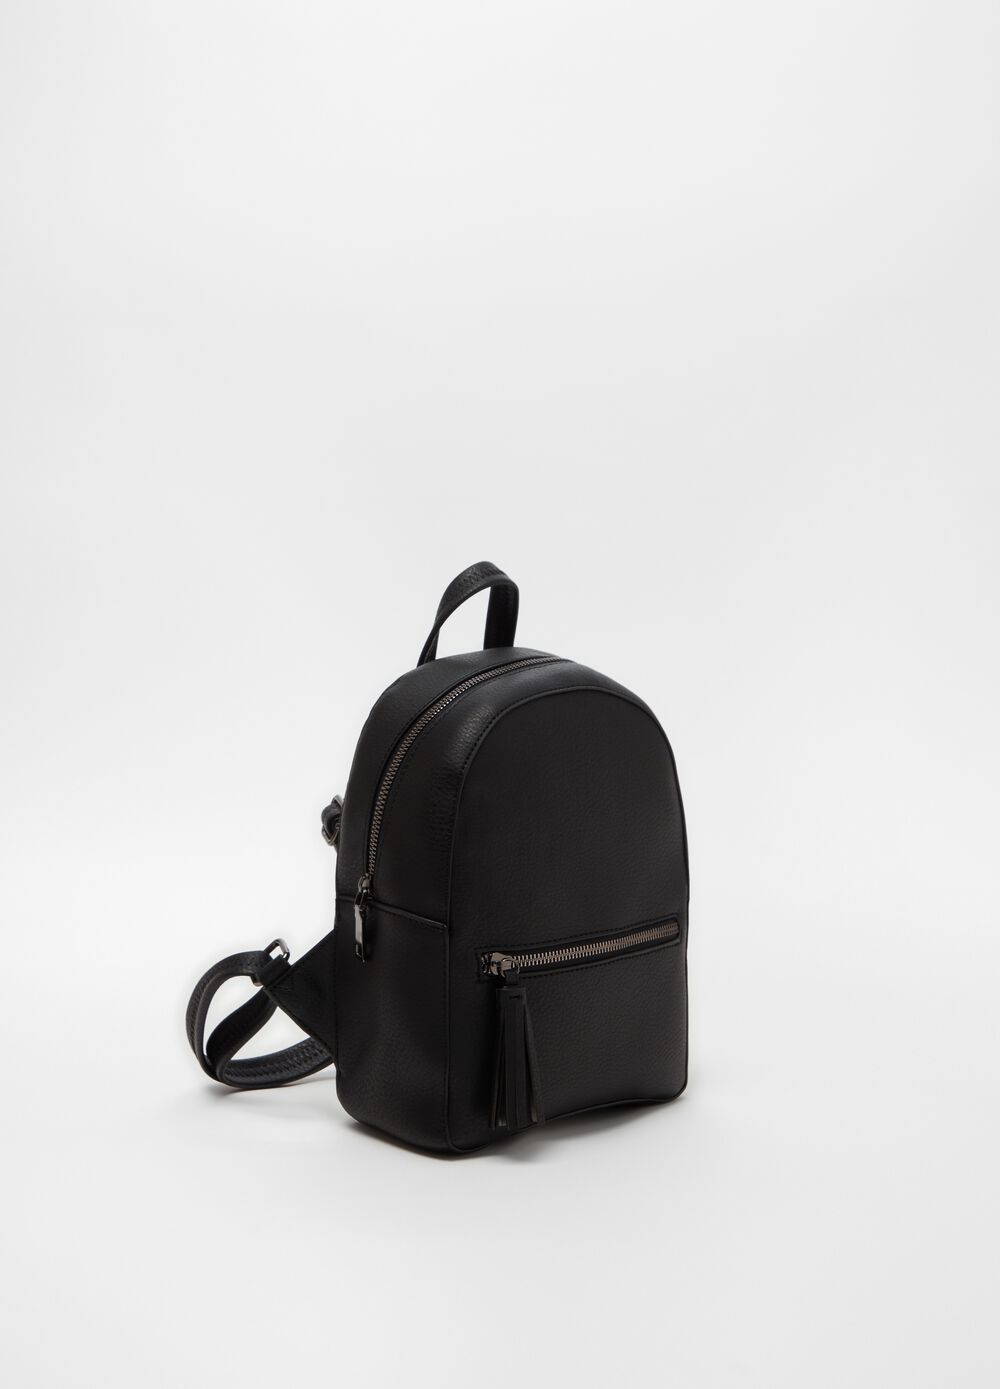 Textured leather-look backpack